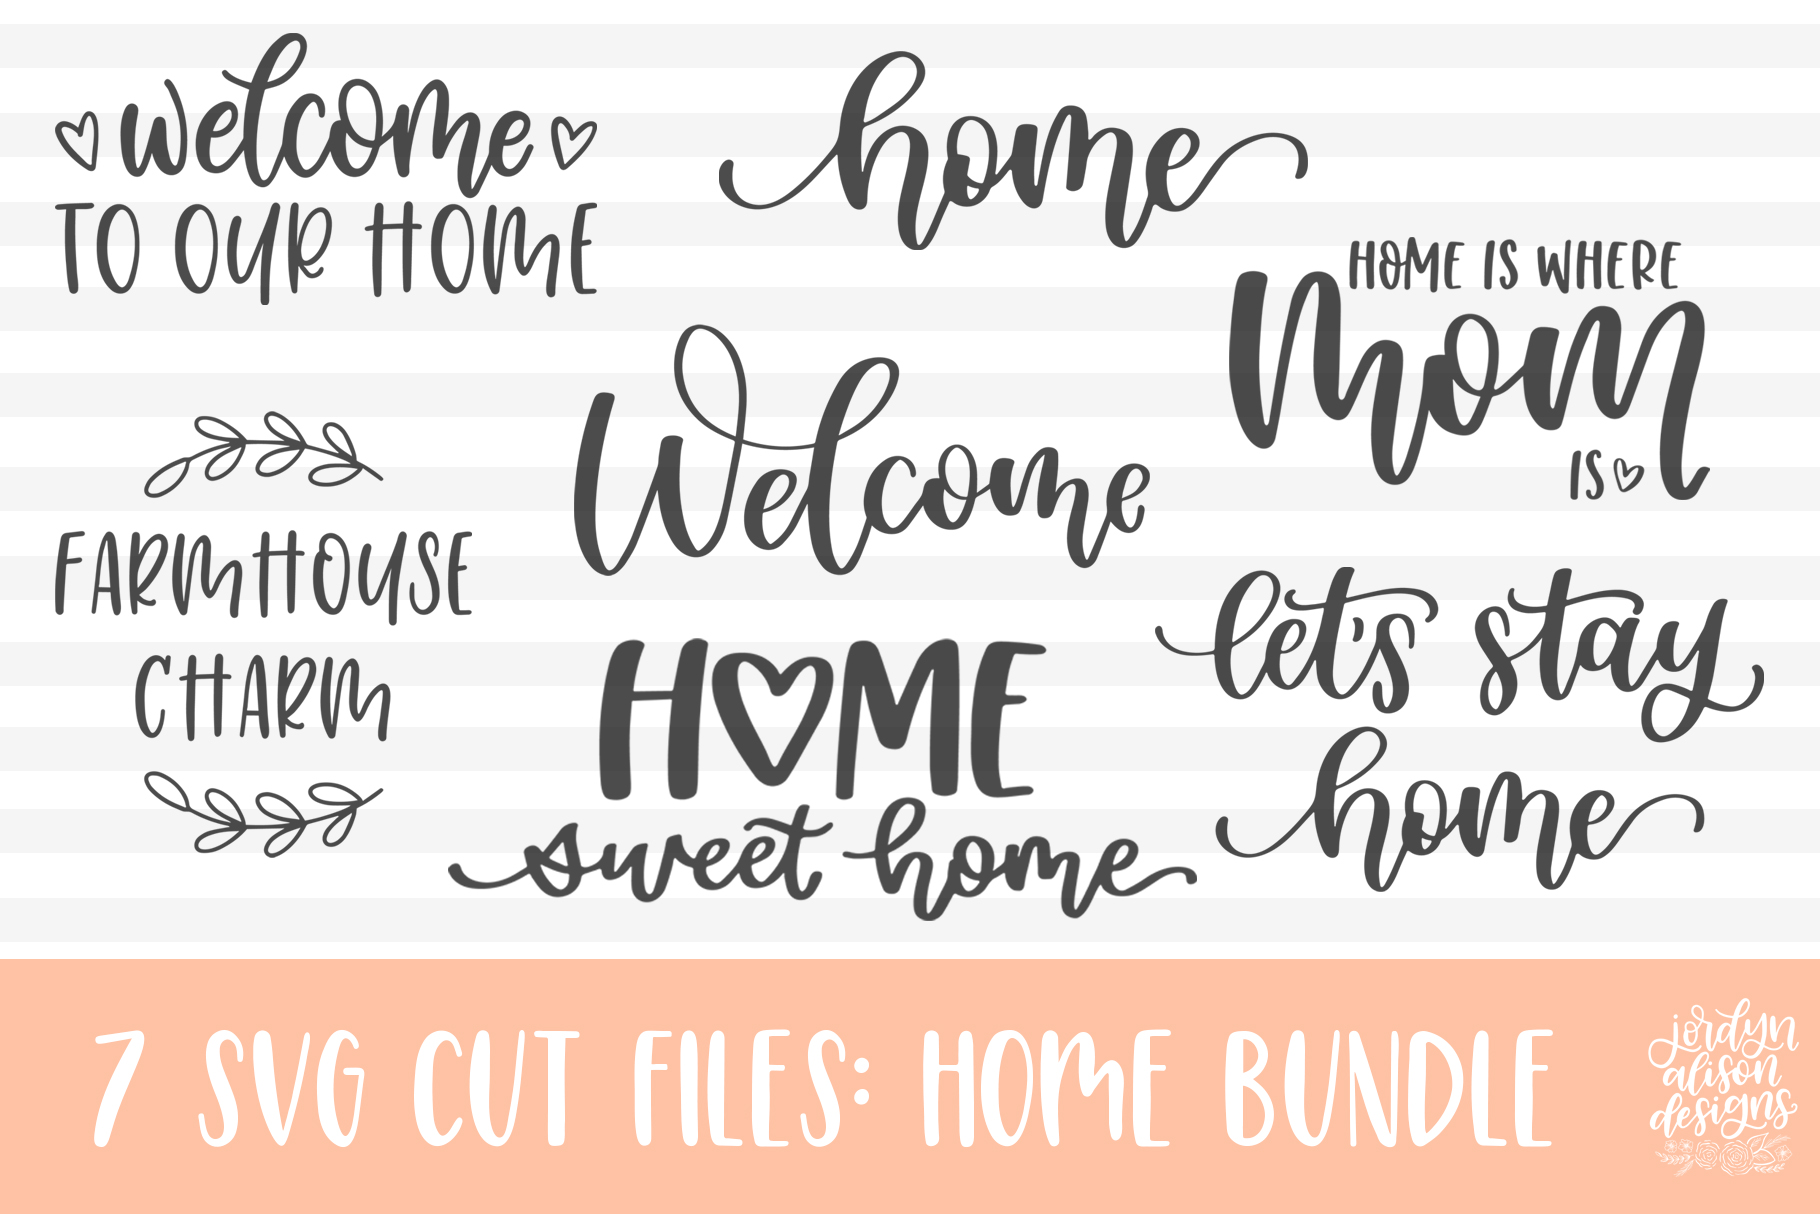 Download Free Home Bundle Graphic By Jordynalisondesigns Creative Fabrica for Cricut Explore, Silhouette and other cutting machines.